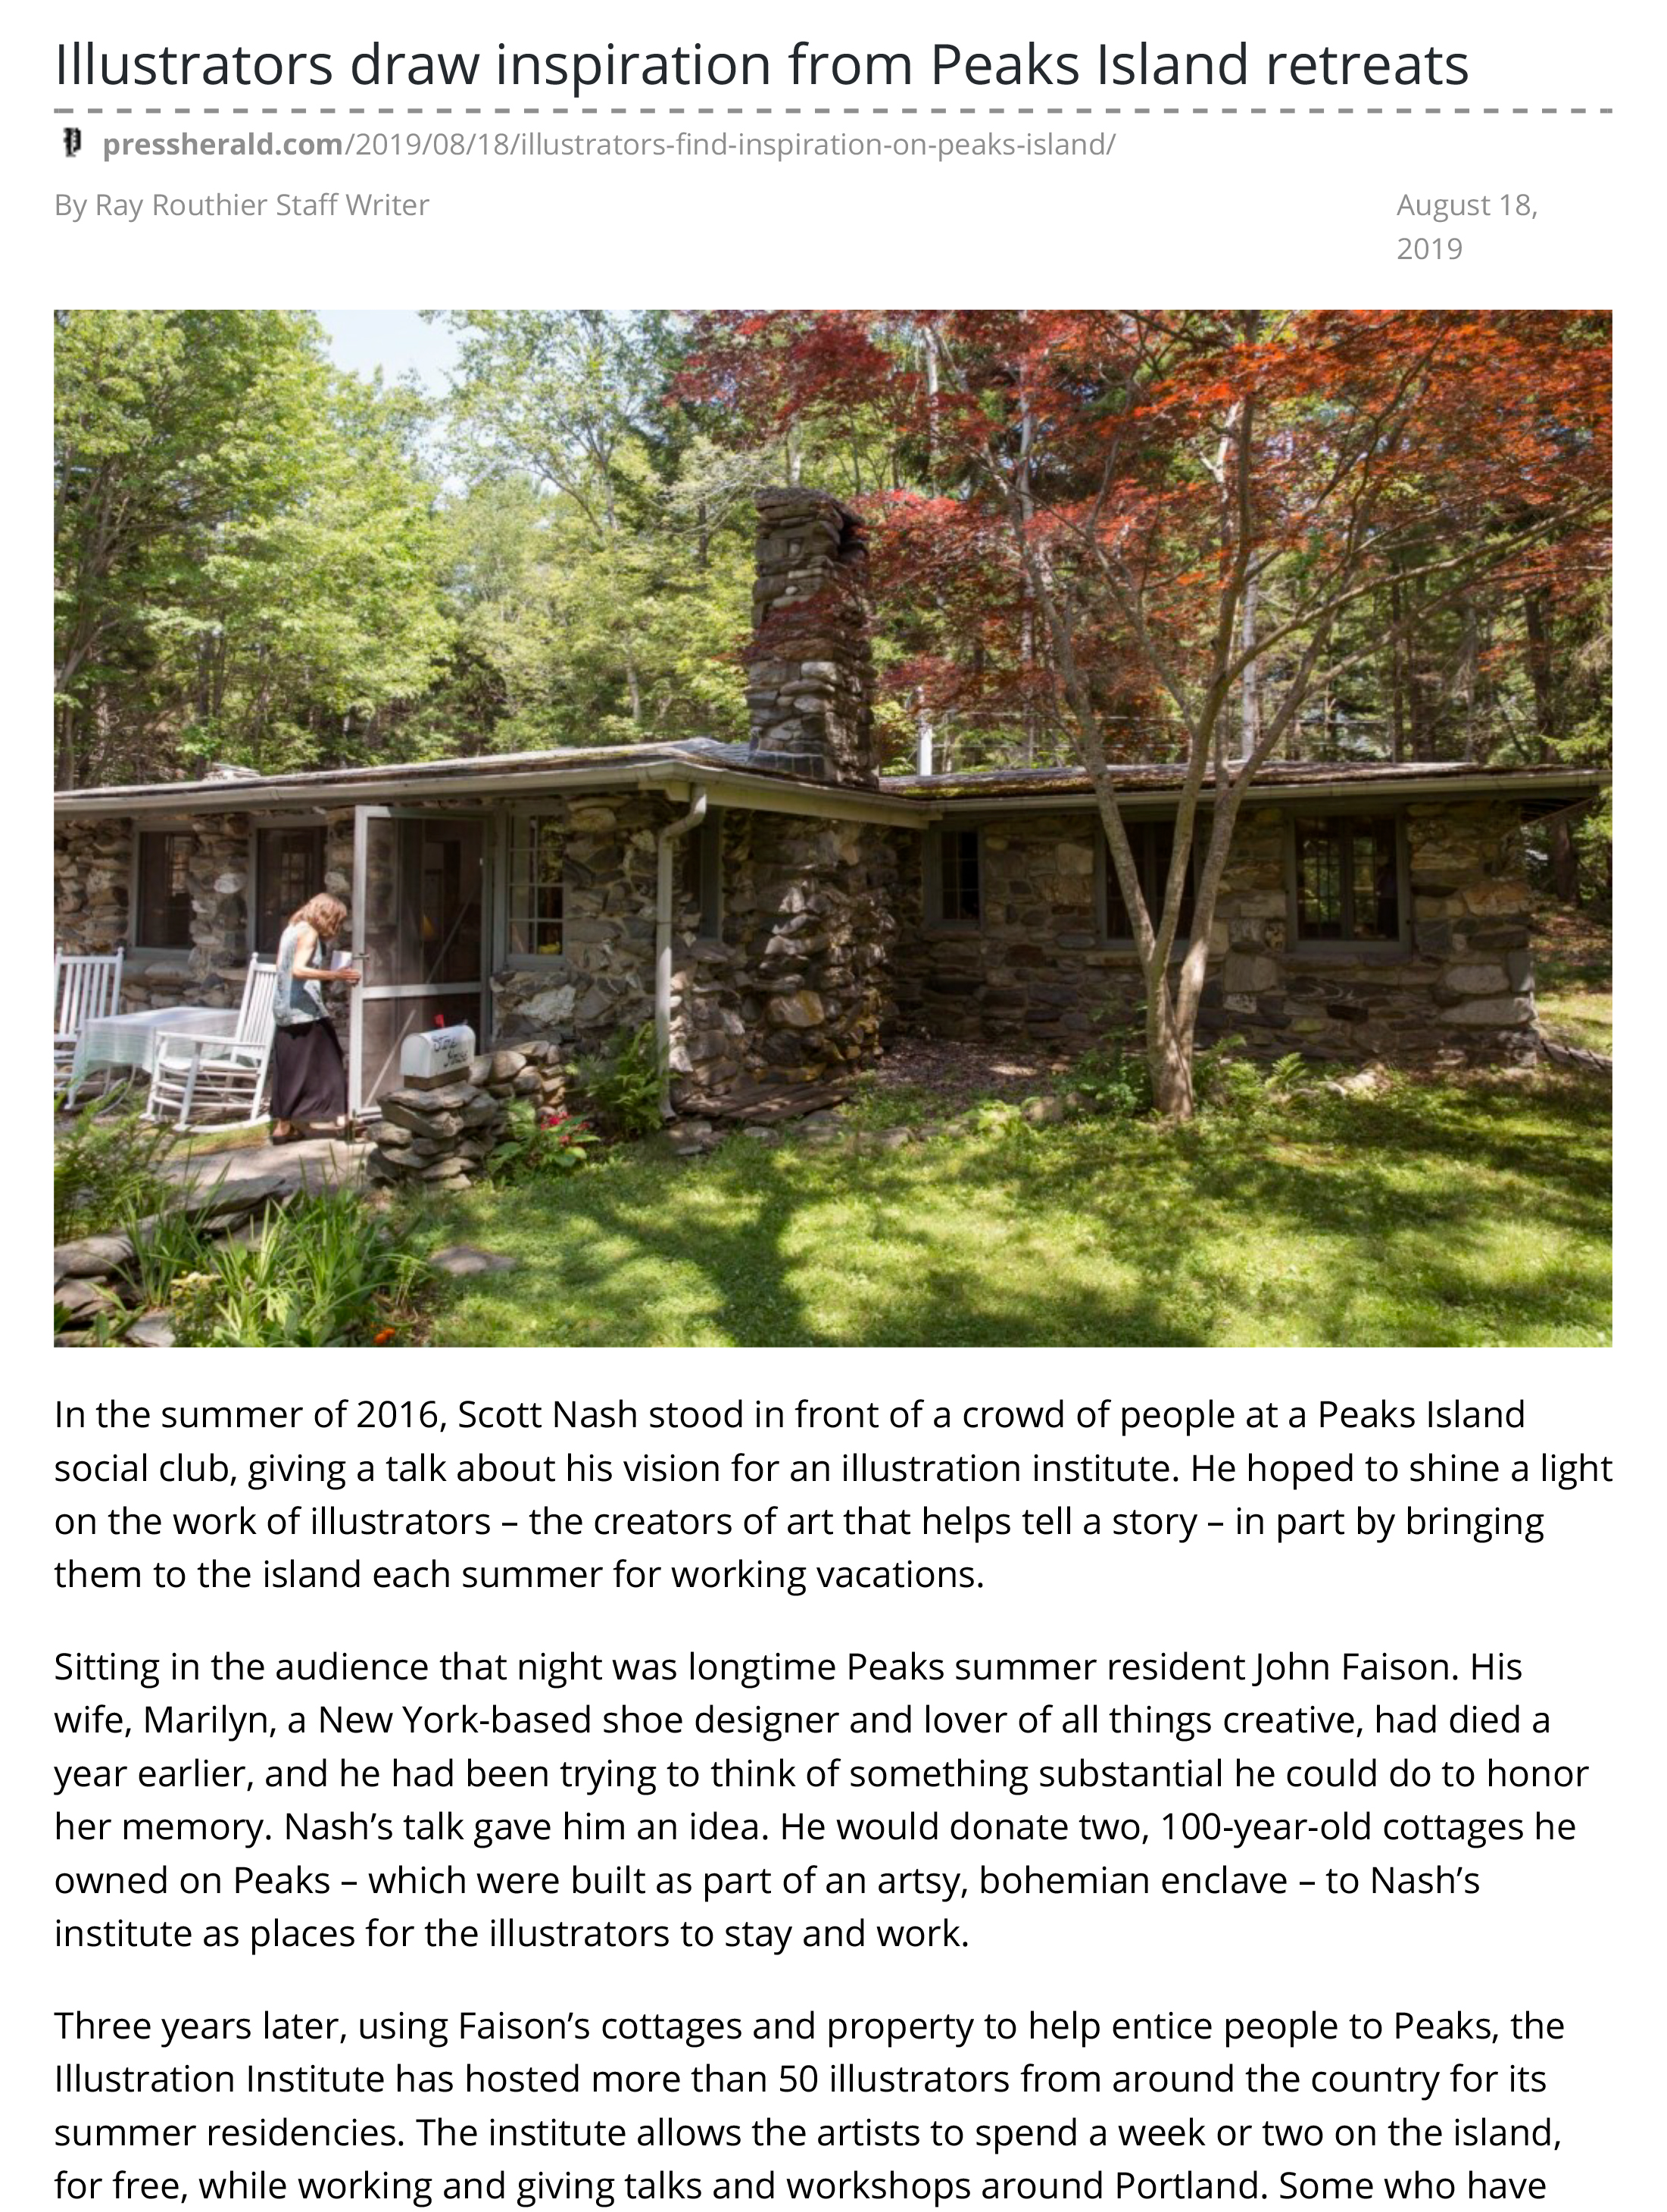 pressherald.com-Illustrators draw inspiration from Peaks Island retreats (dragged).jpg